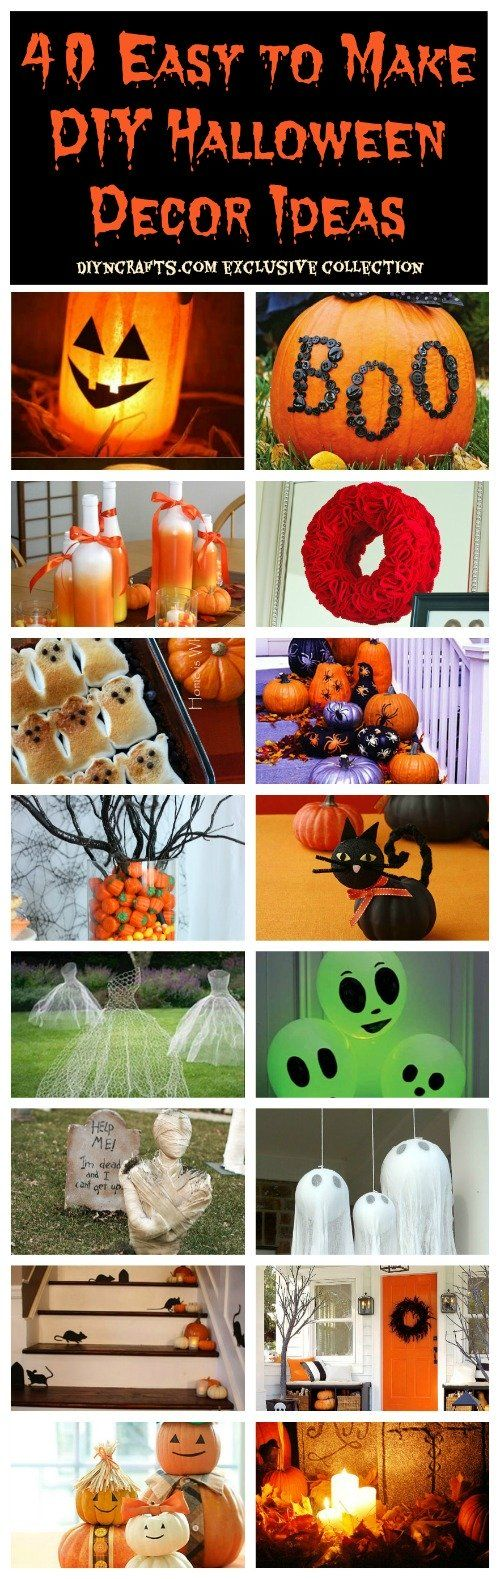 Halloween is a great time for decorating. Many people spend days, not to mention